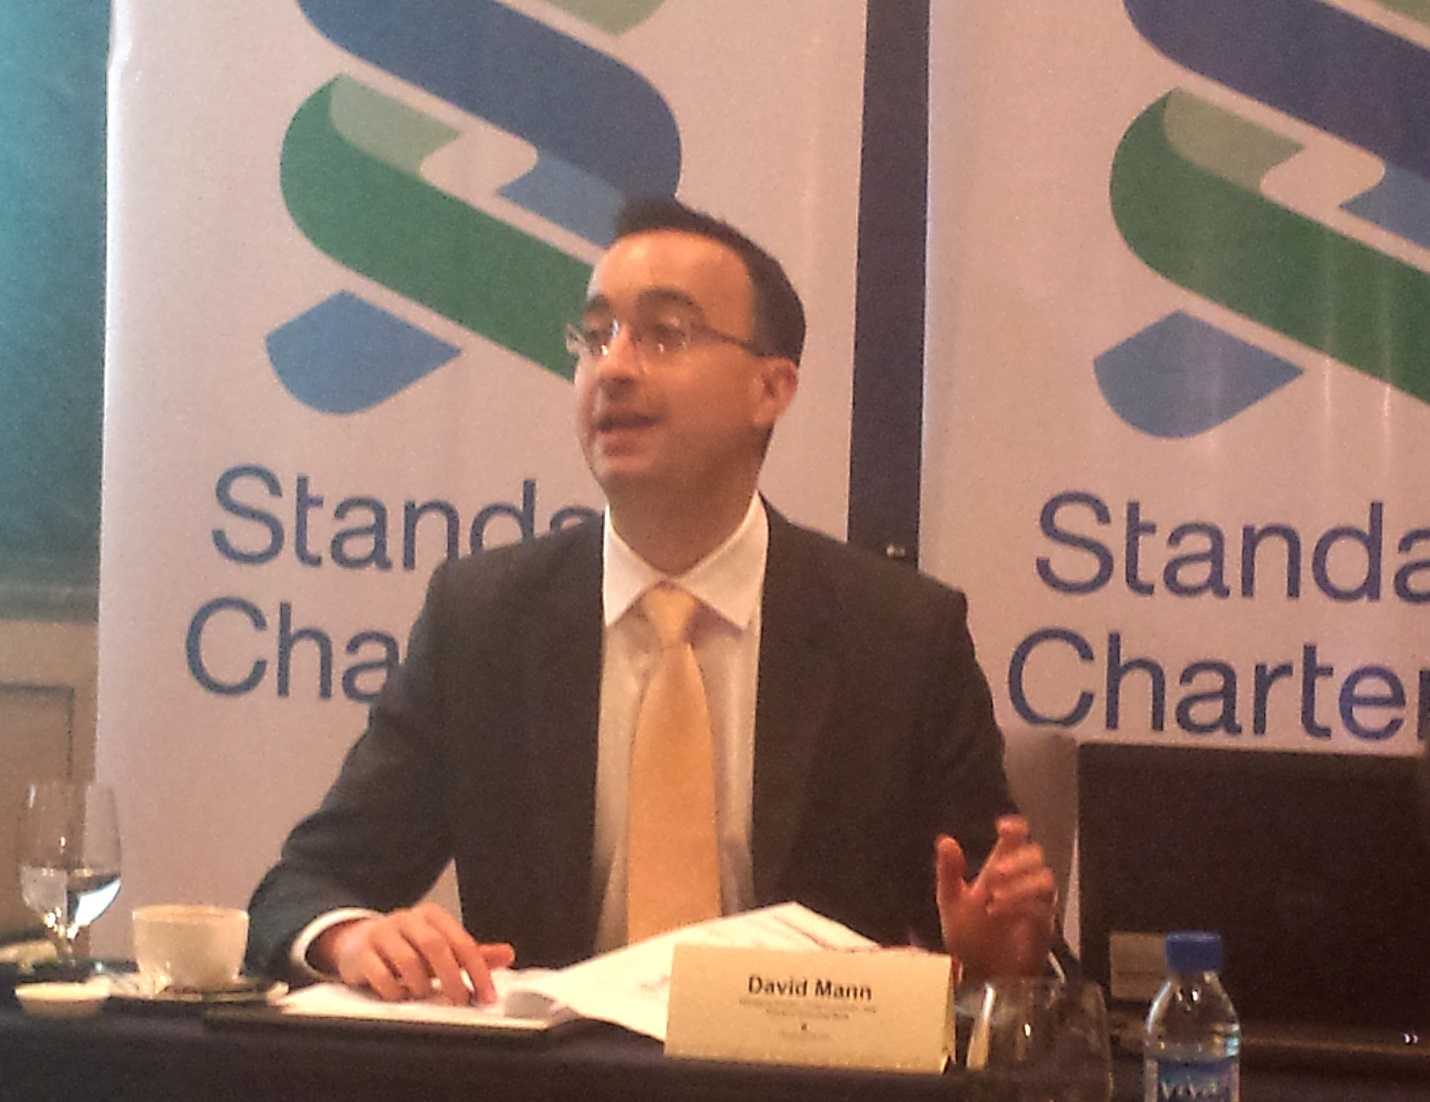 Standard Chartered Bank's chief economist for Asia David Mann, in a press briefing in Taguig City Tuesday, said it is possible for the Philippines to increase its GDP growth from the current average of more than 6.0 percent to a range of 7.0 percent to above 8.0 percent in the next five years. (PNA photo)